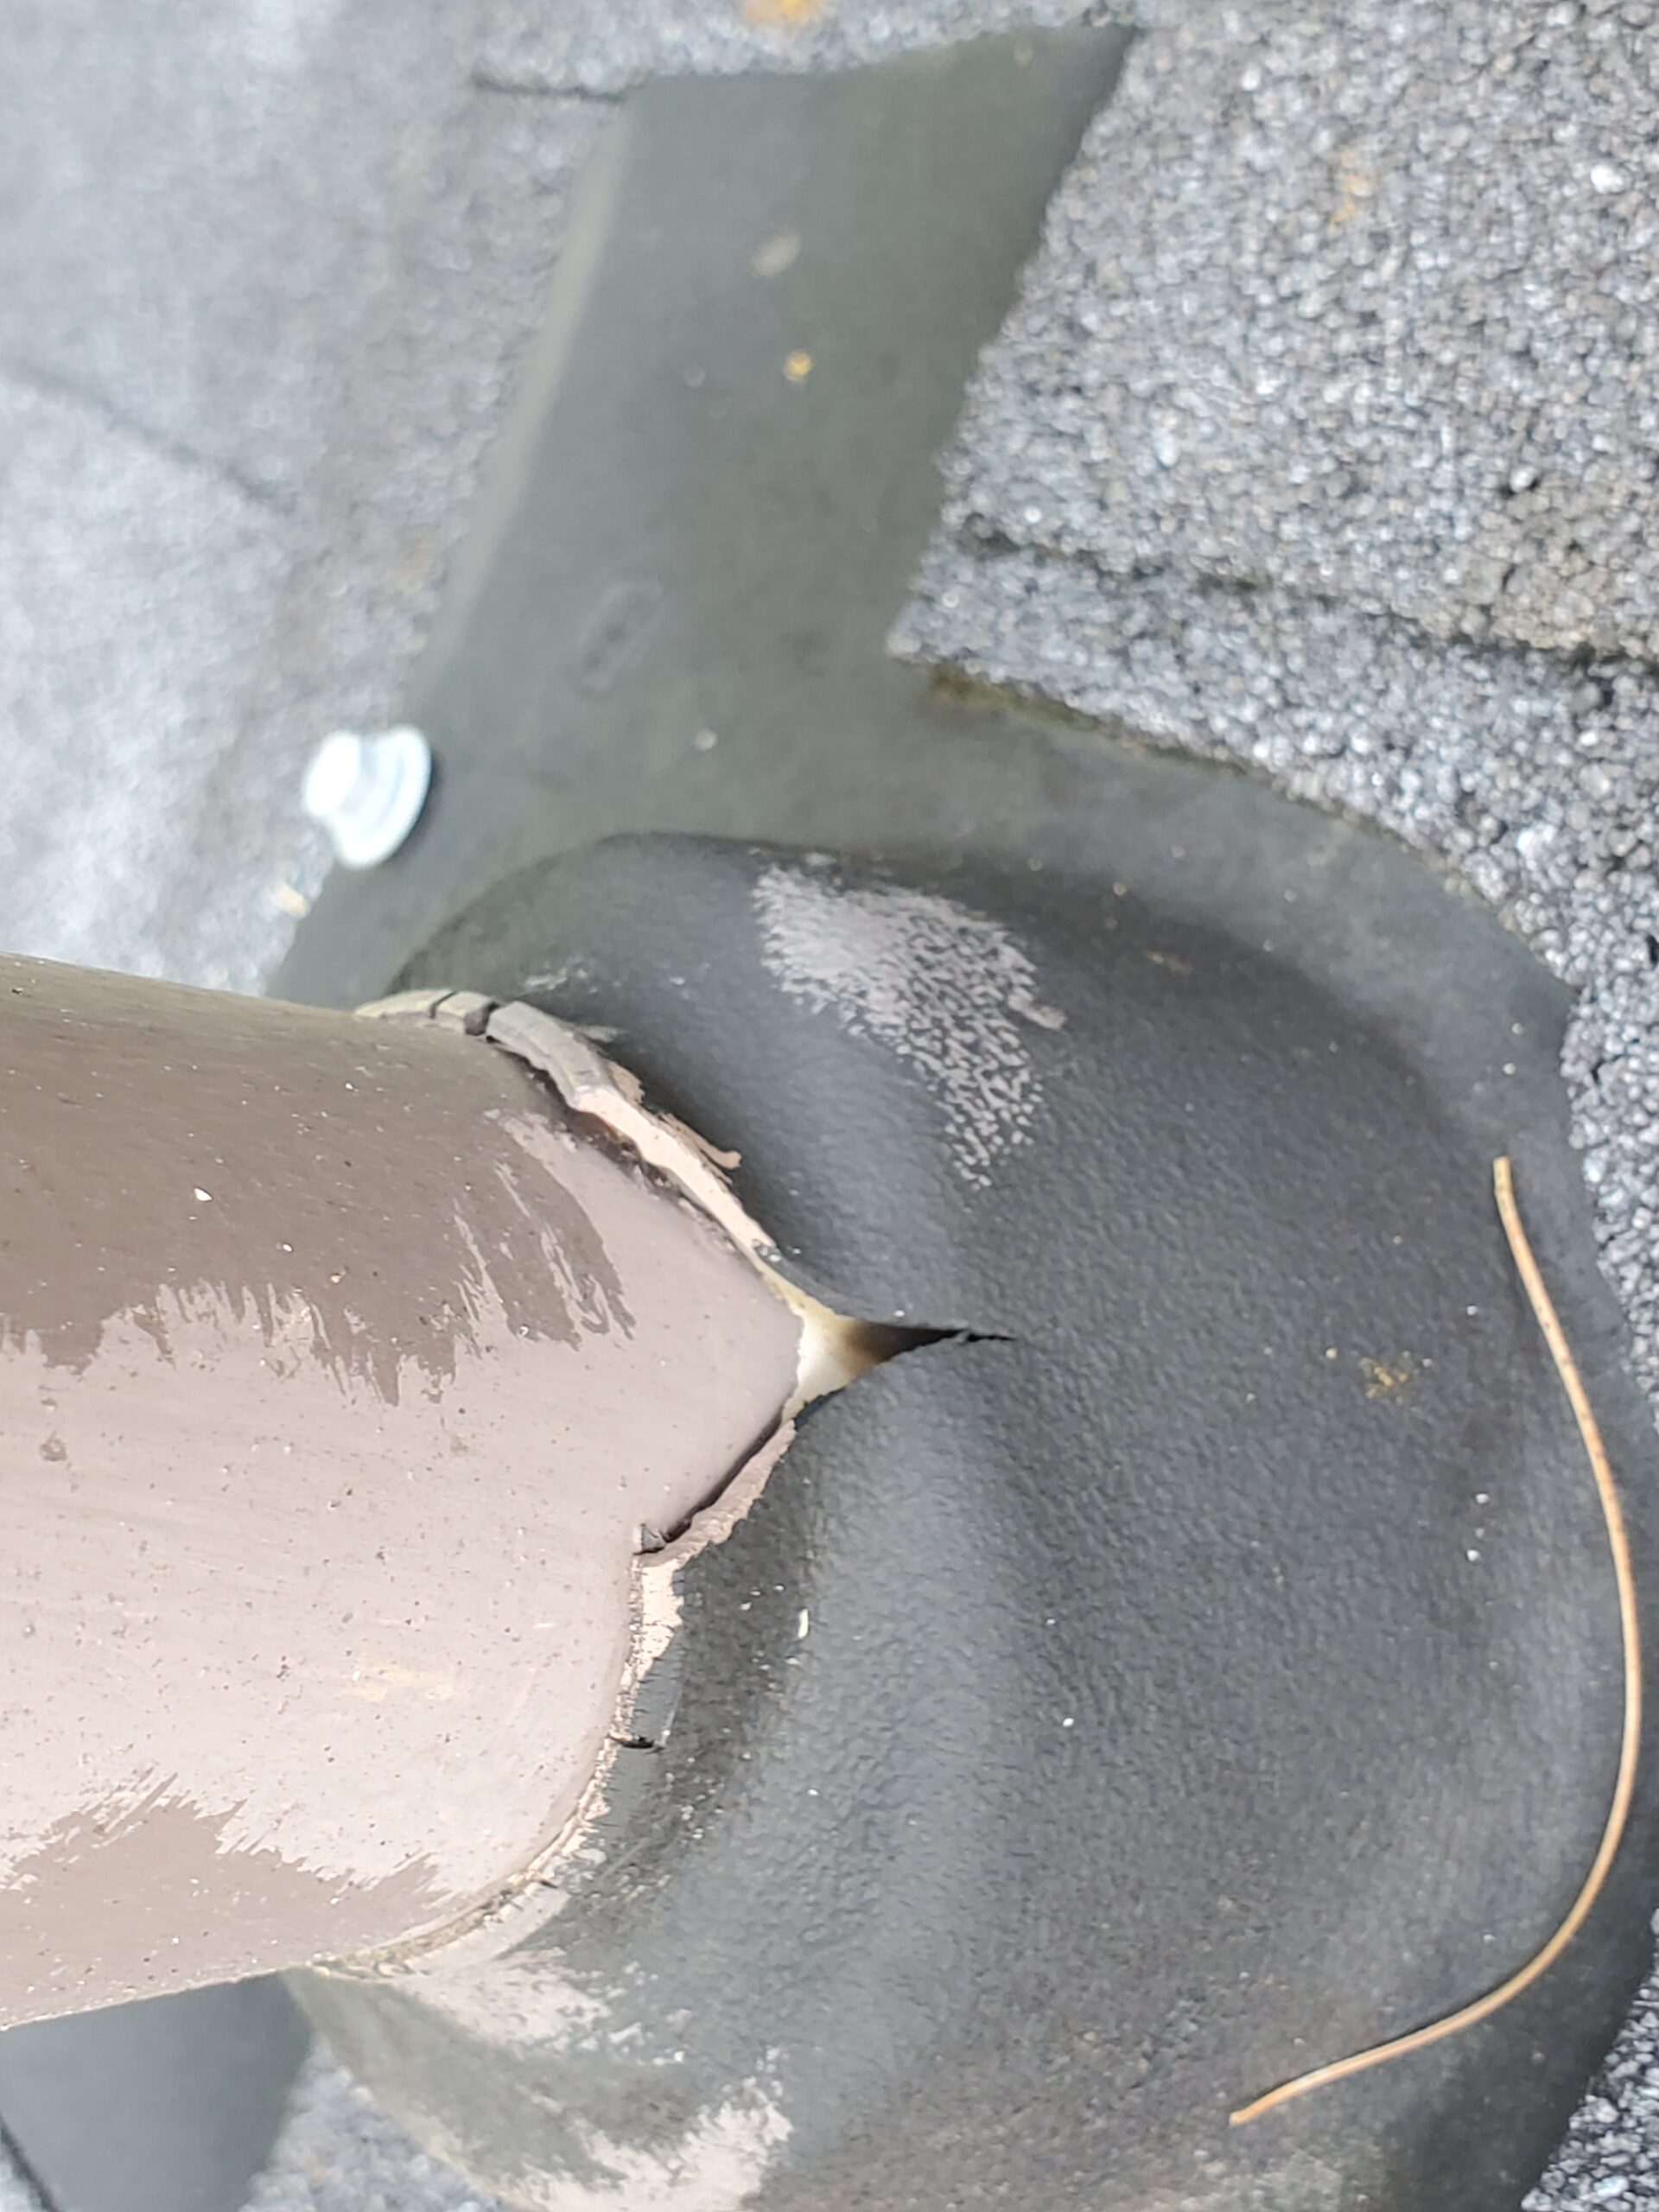 This is a picture of a plumbing boot on a roof and the rubber part is dry rotting in cracking